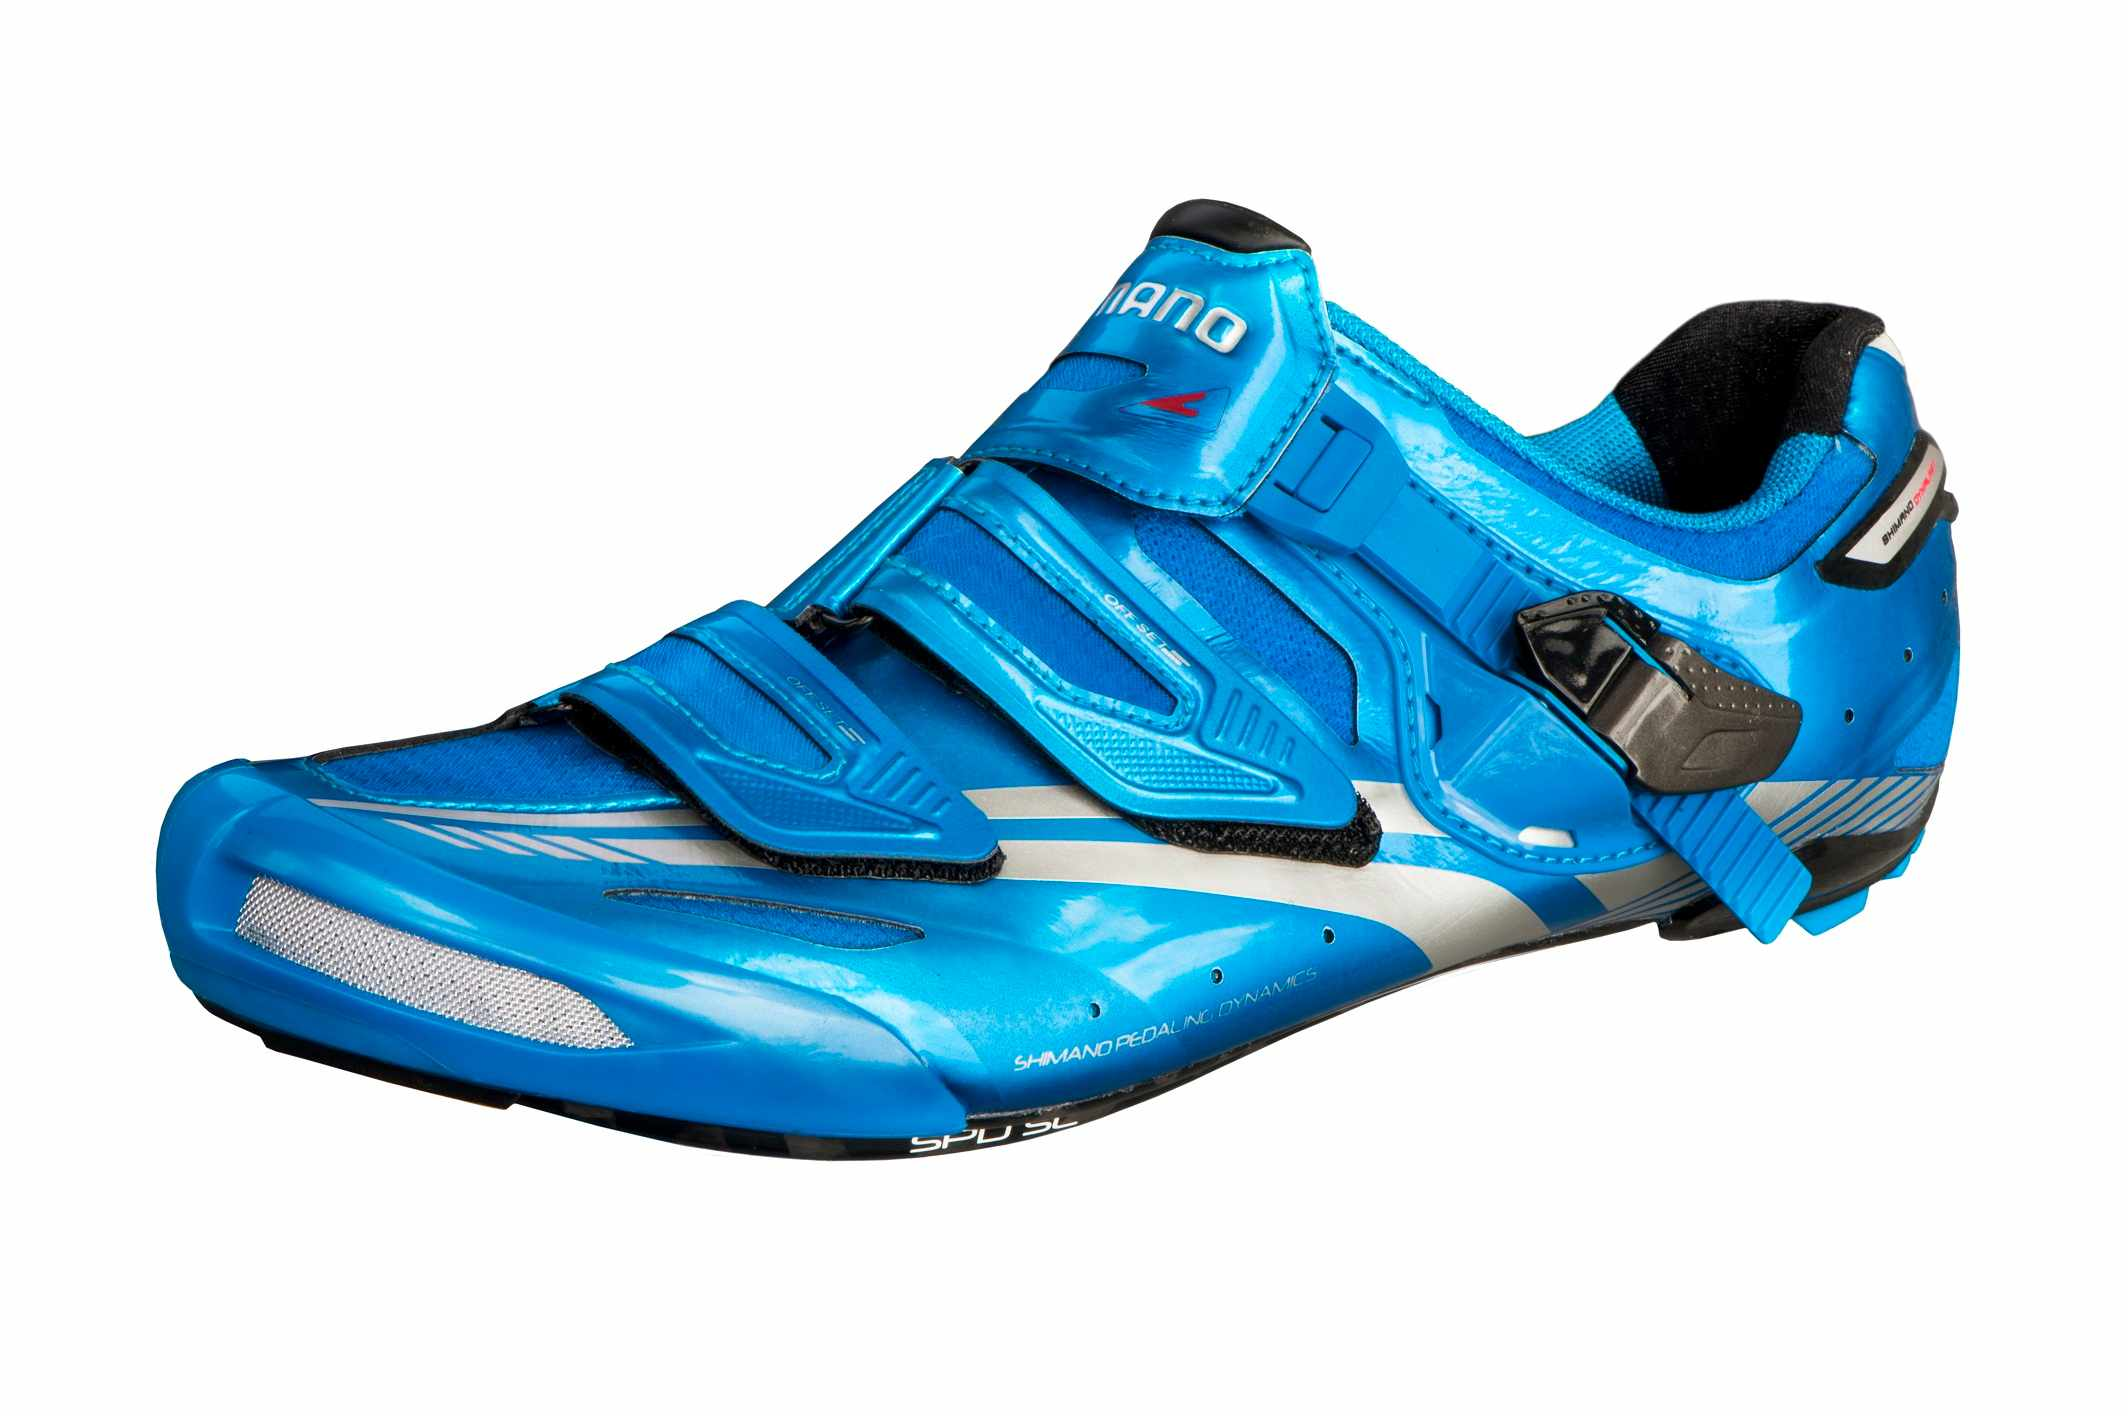 Shimano have launched a limited edition (read: blue) version of their R320 shoe